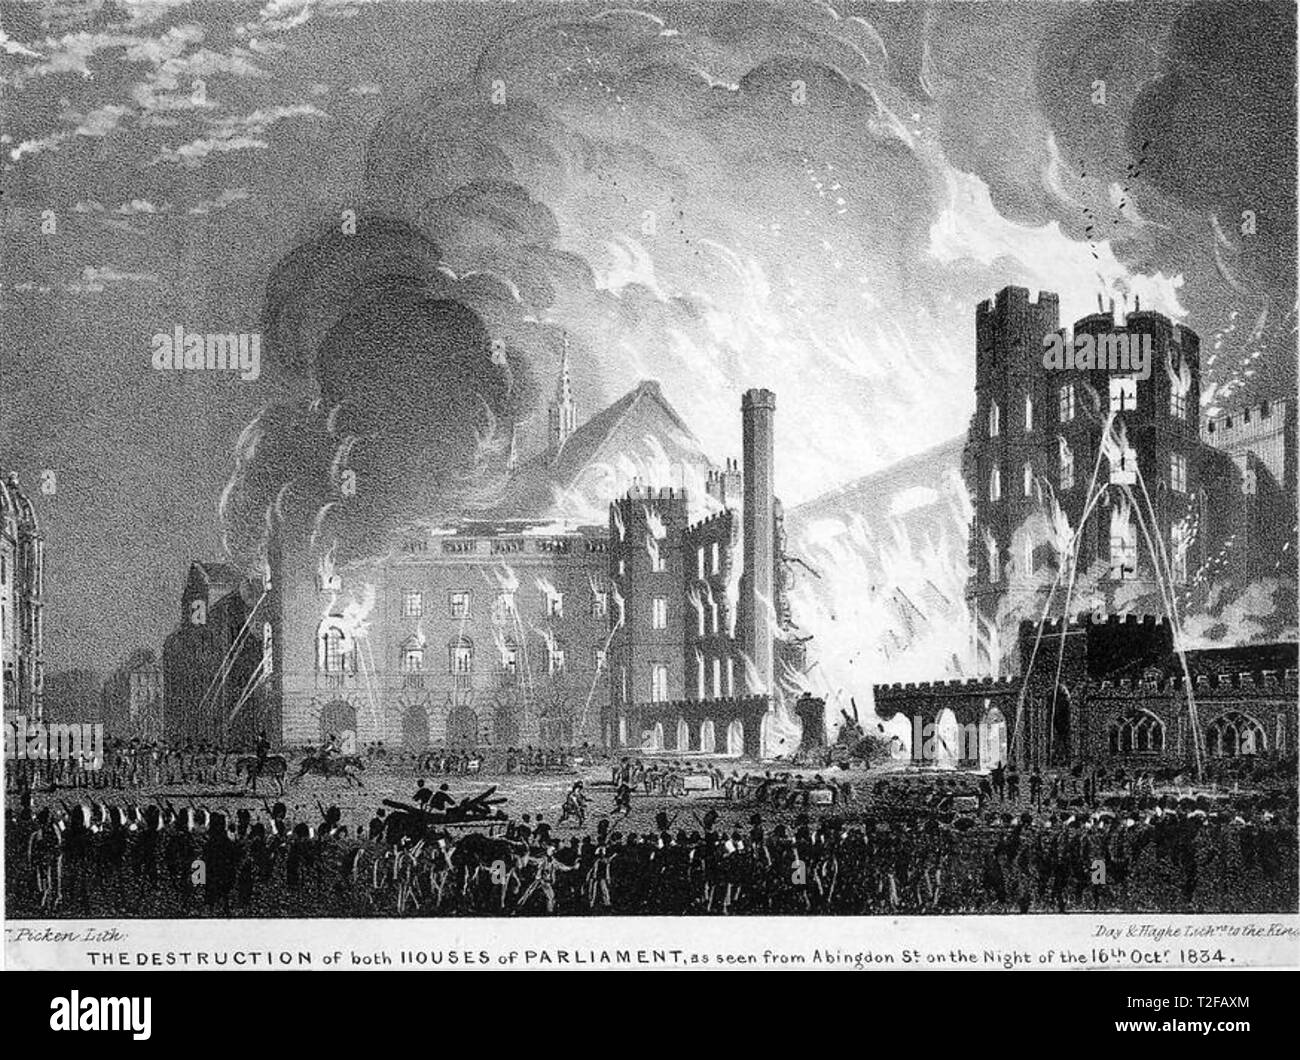 HOUSES OF PARLIAMENT are destroyed in the great fire of 16 October 1834 - Stock Image